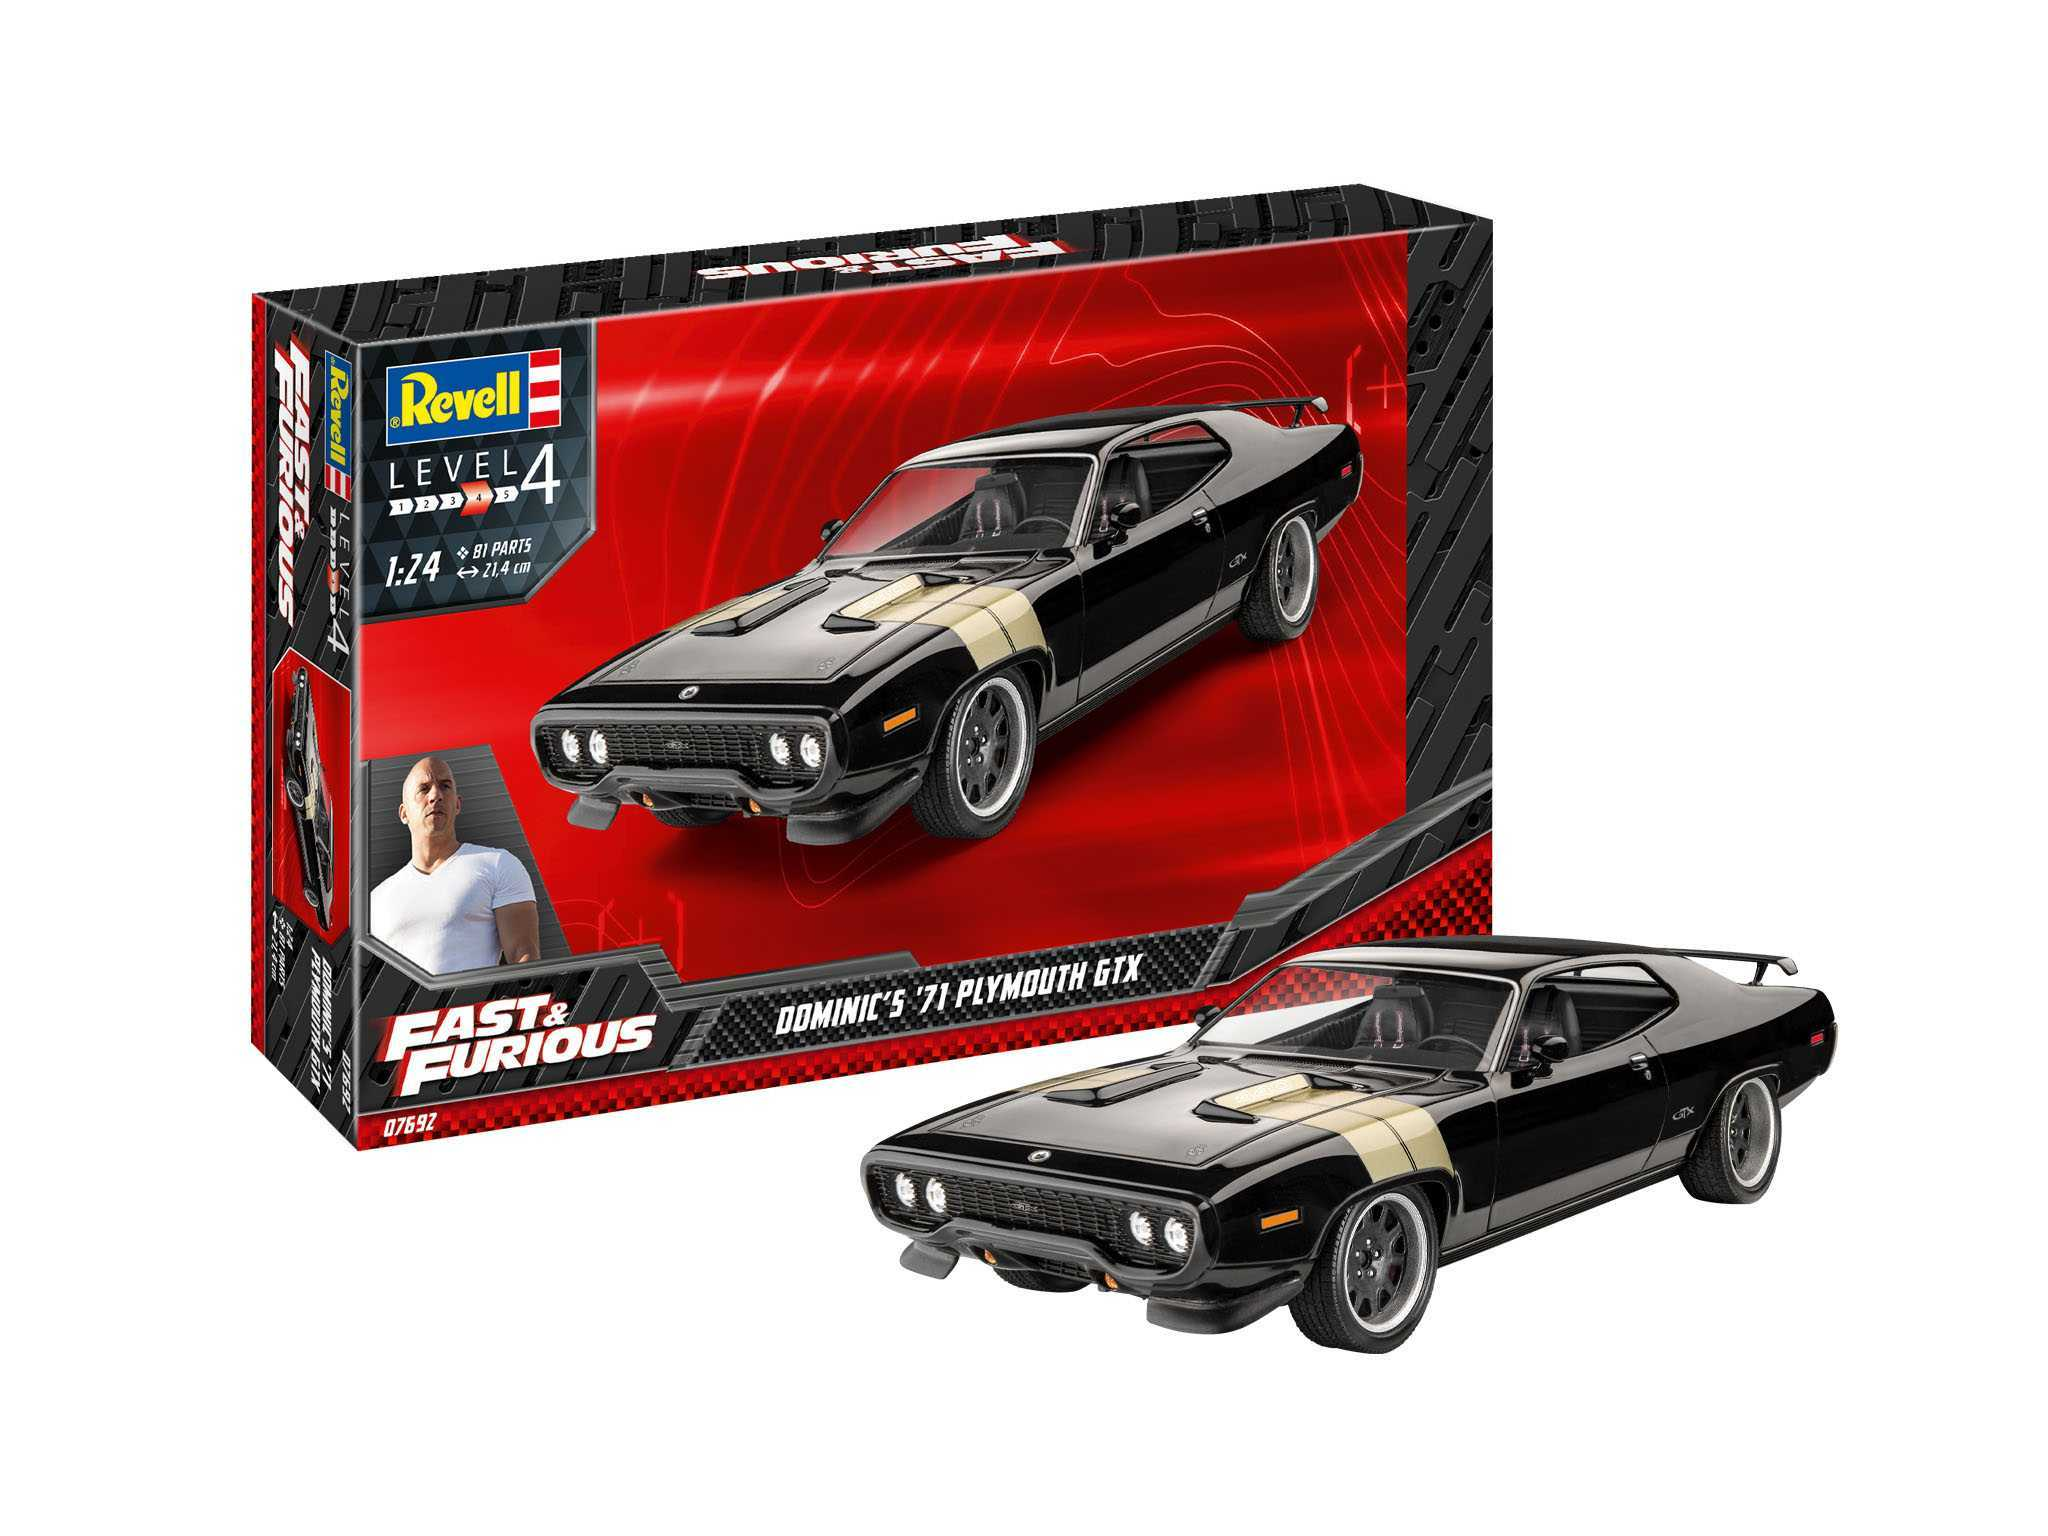 1:24 Fast & Furious Dominic's 1971 Plymouth GTX (Model Set)